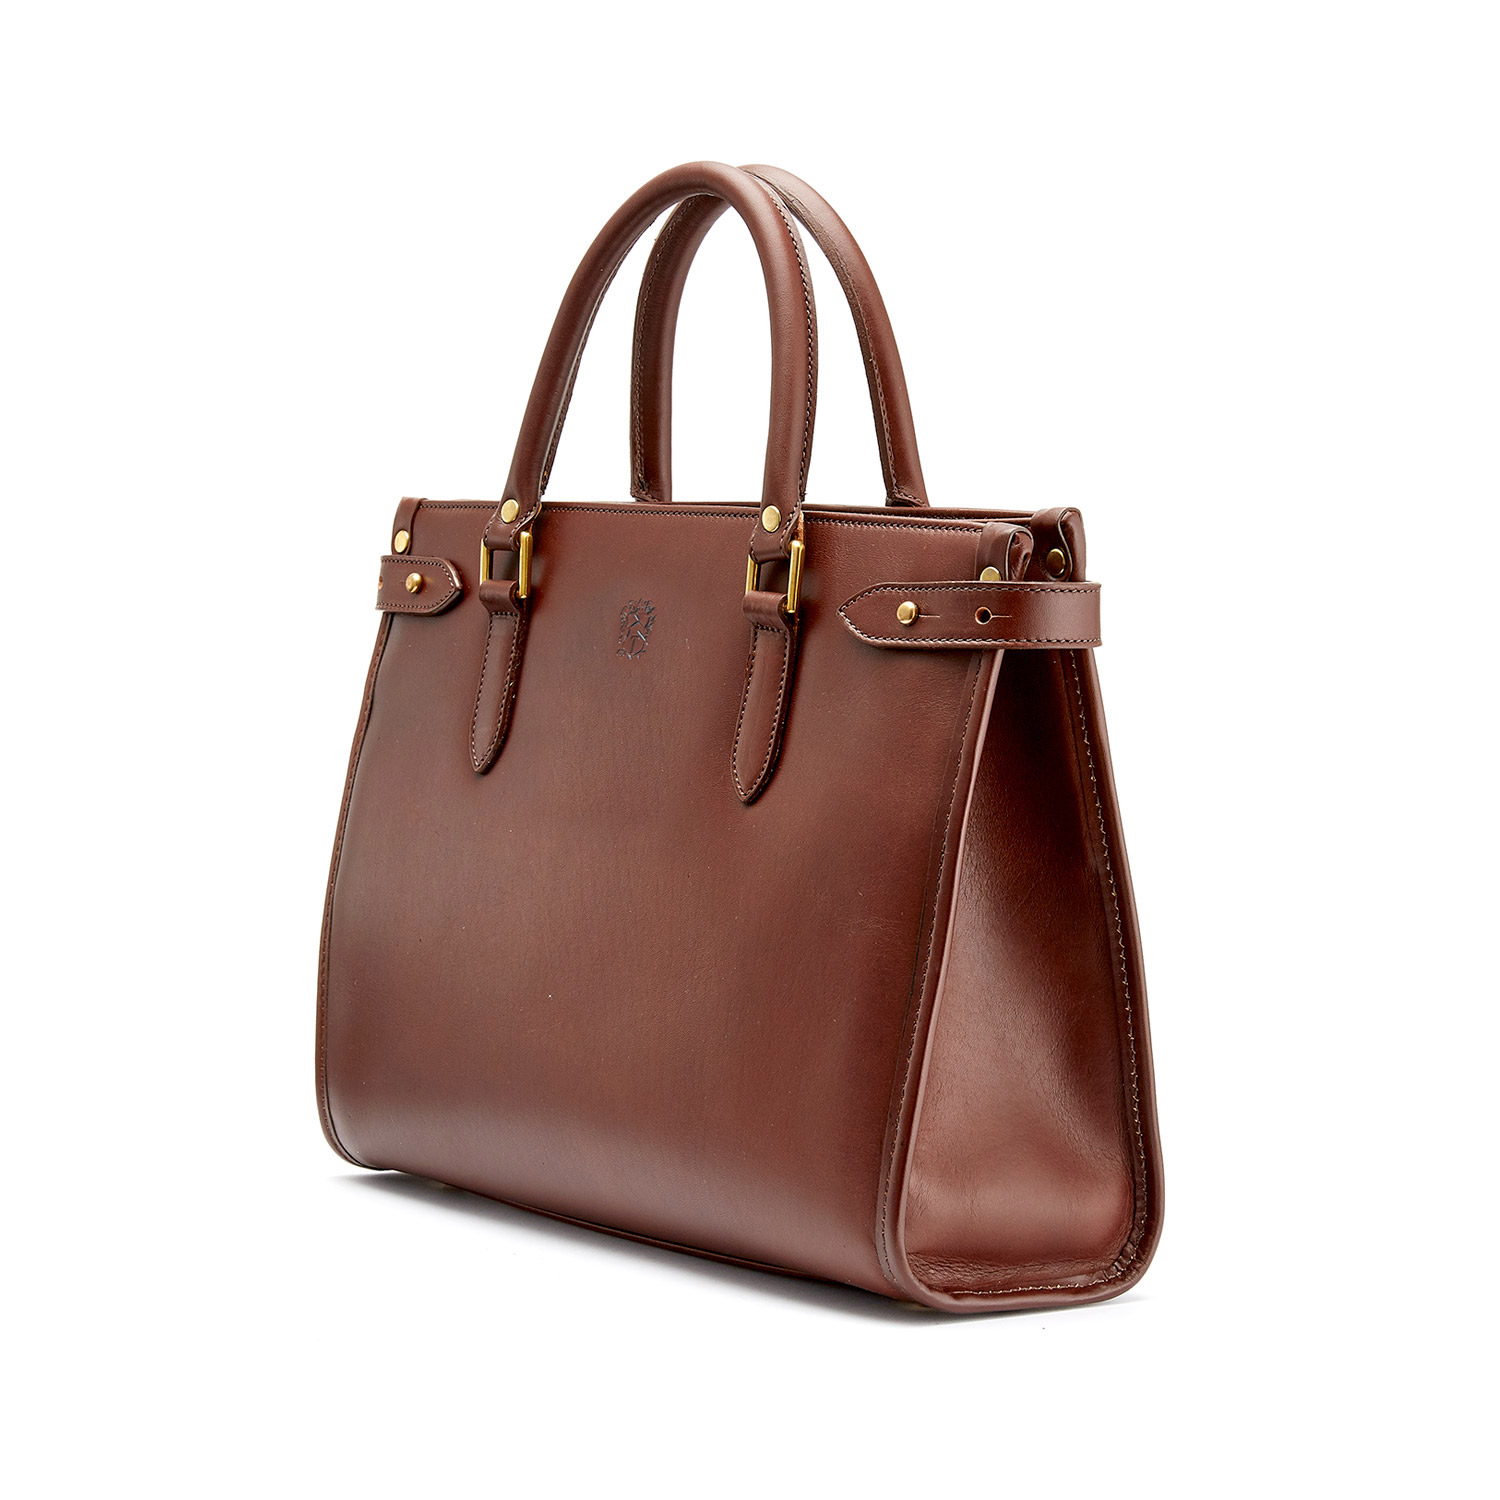 Tusting Kimbolton in Chestnut Leather